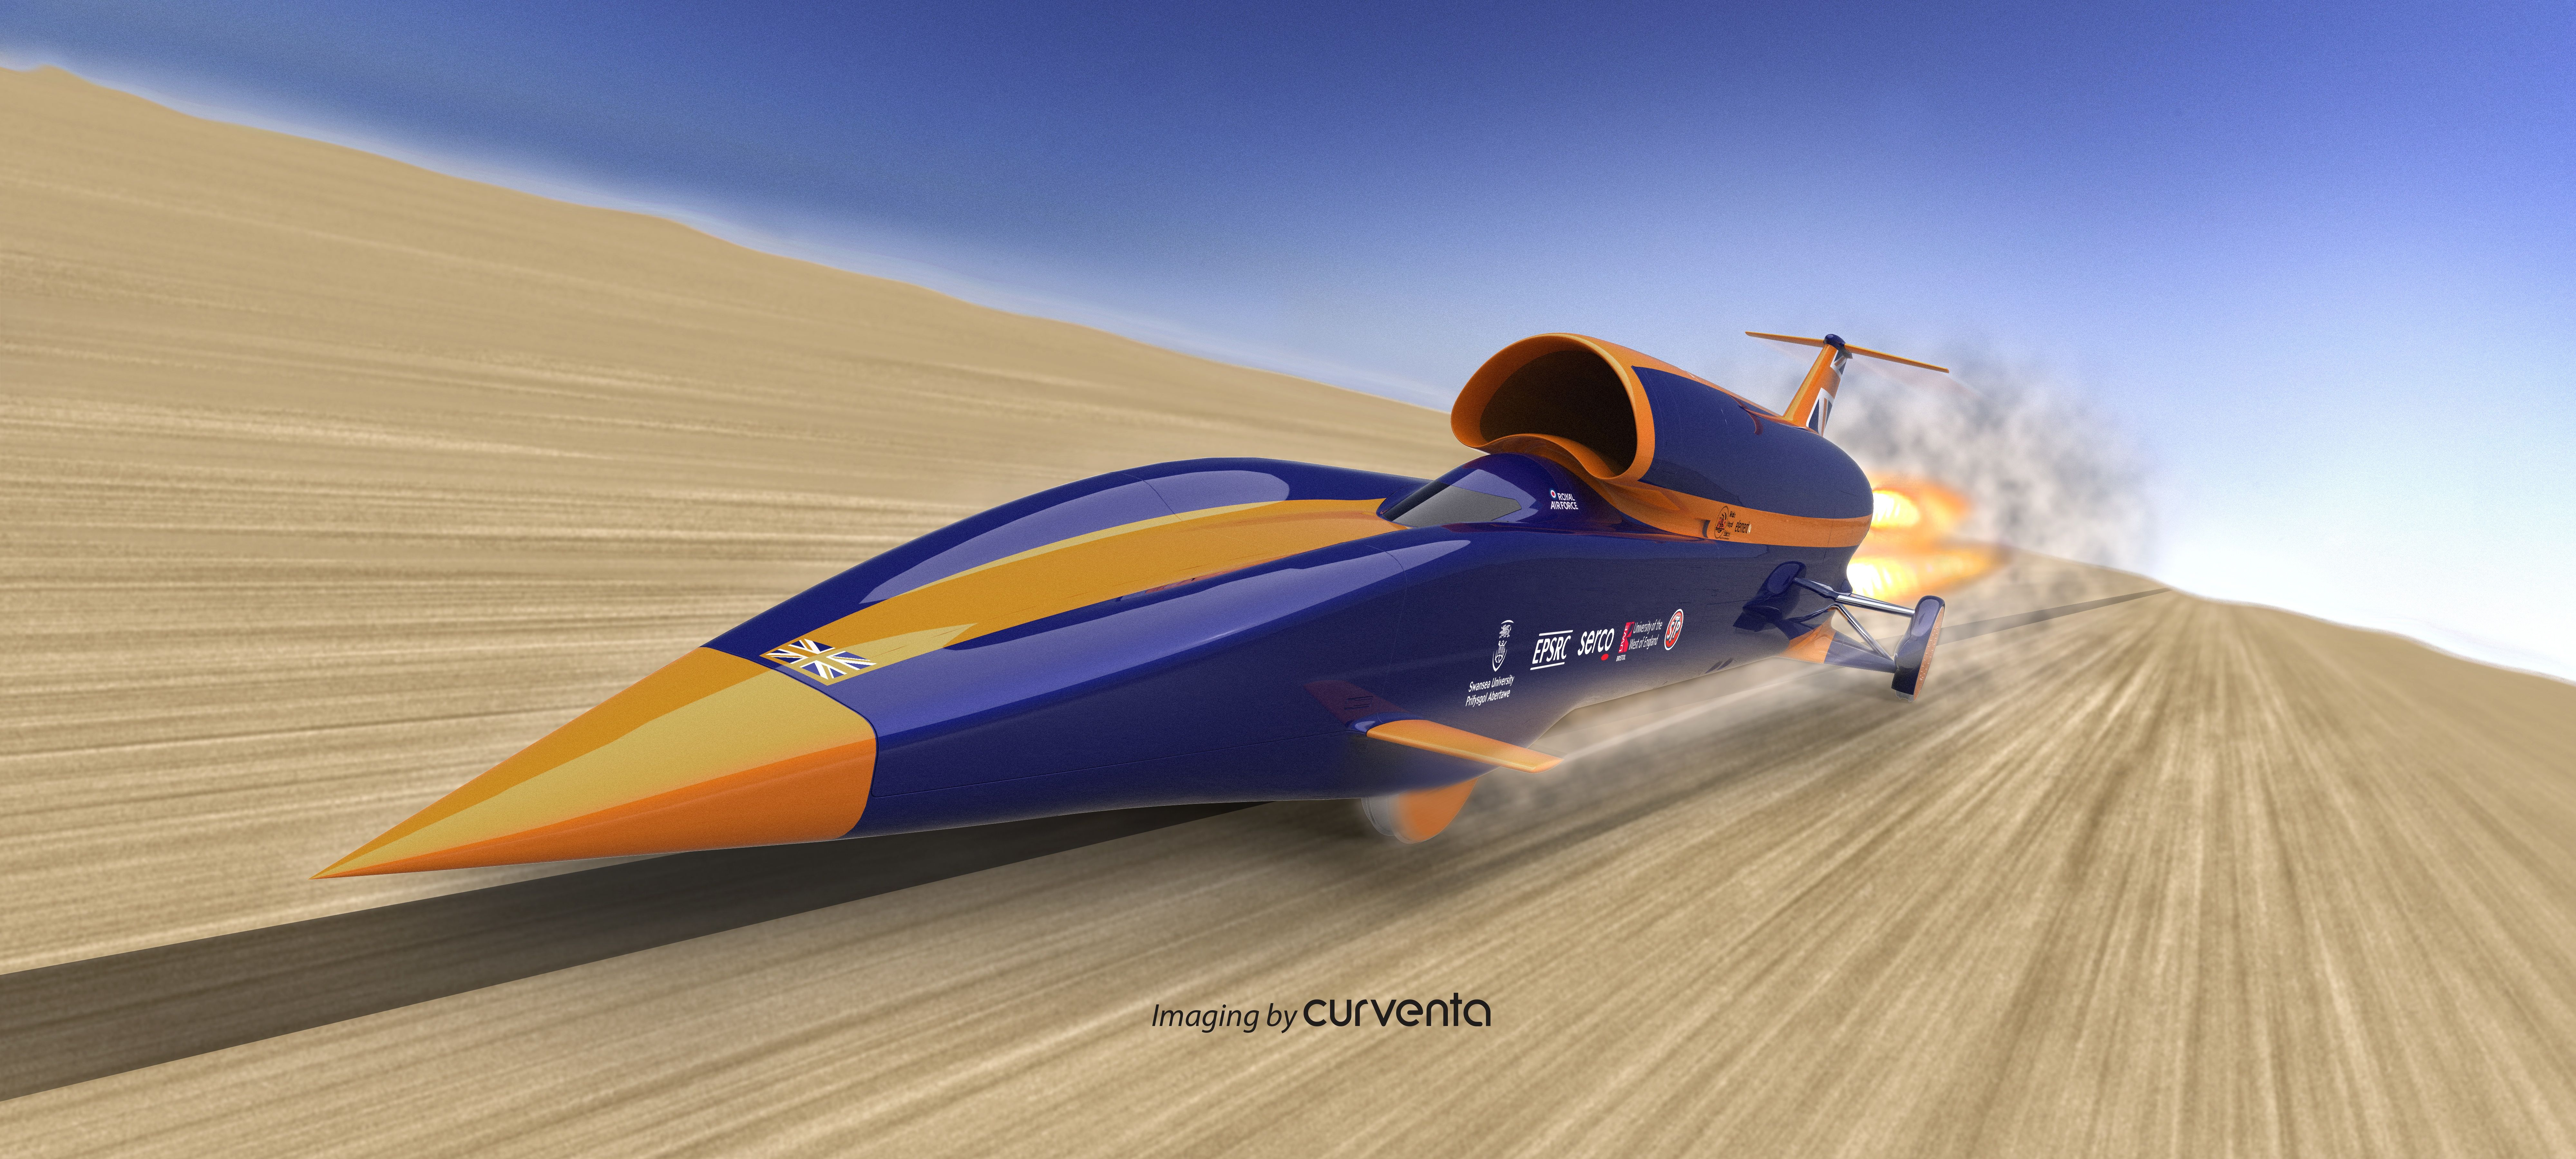 Bloodhound Ssc Is A Jet And Rocket Powered Car Designed To Go At 1 000 Mph Just Over 1 600 Kph Uwe Bristol Is One Of The Fou Car Bloodhound British Aircraft